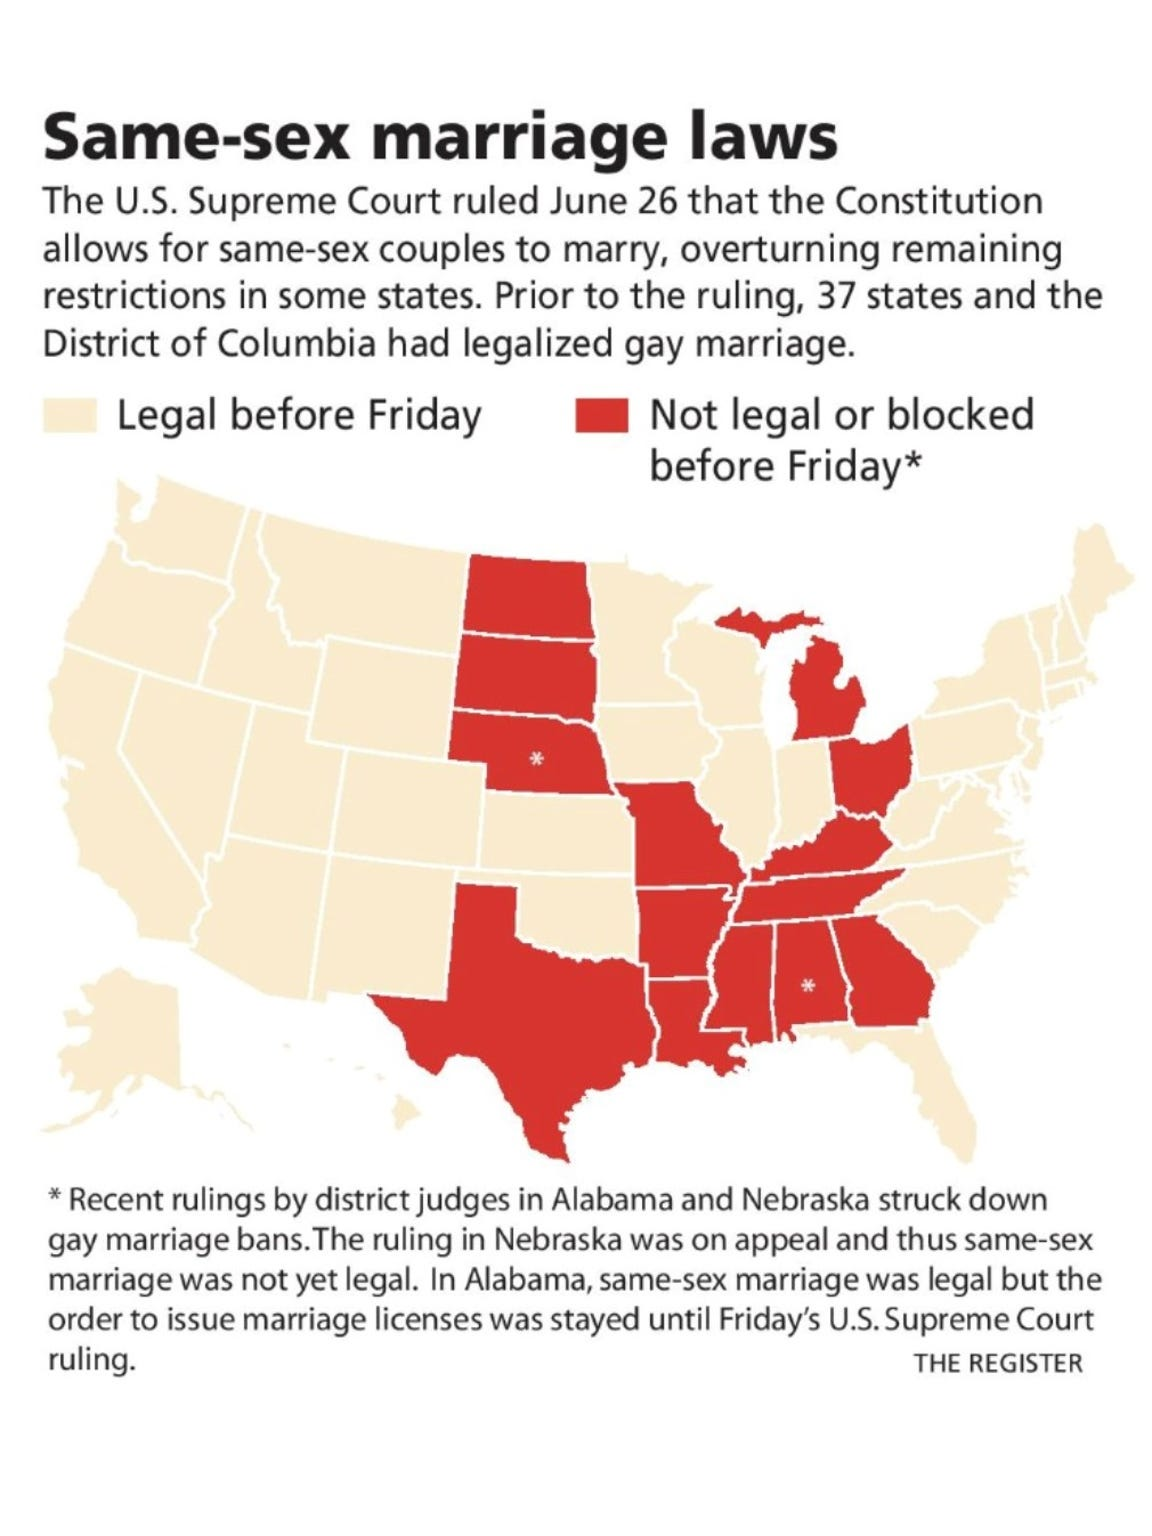 The Supreme Court's ruling  overturned gay marriage